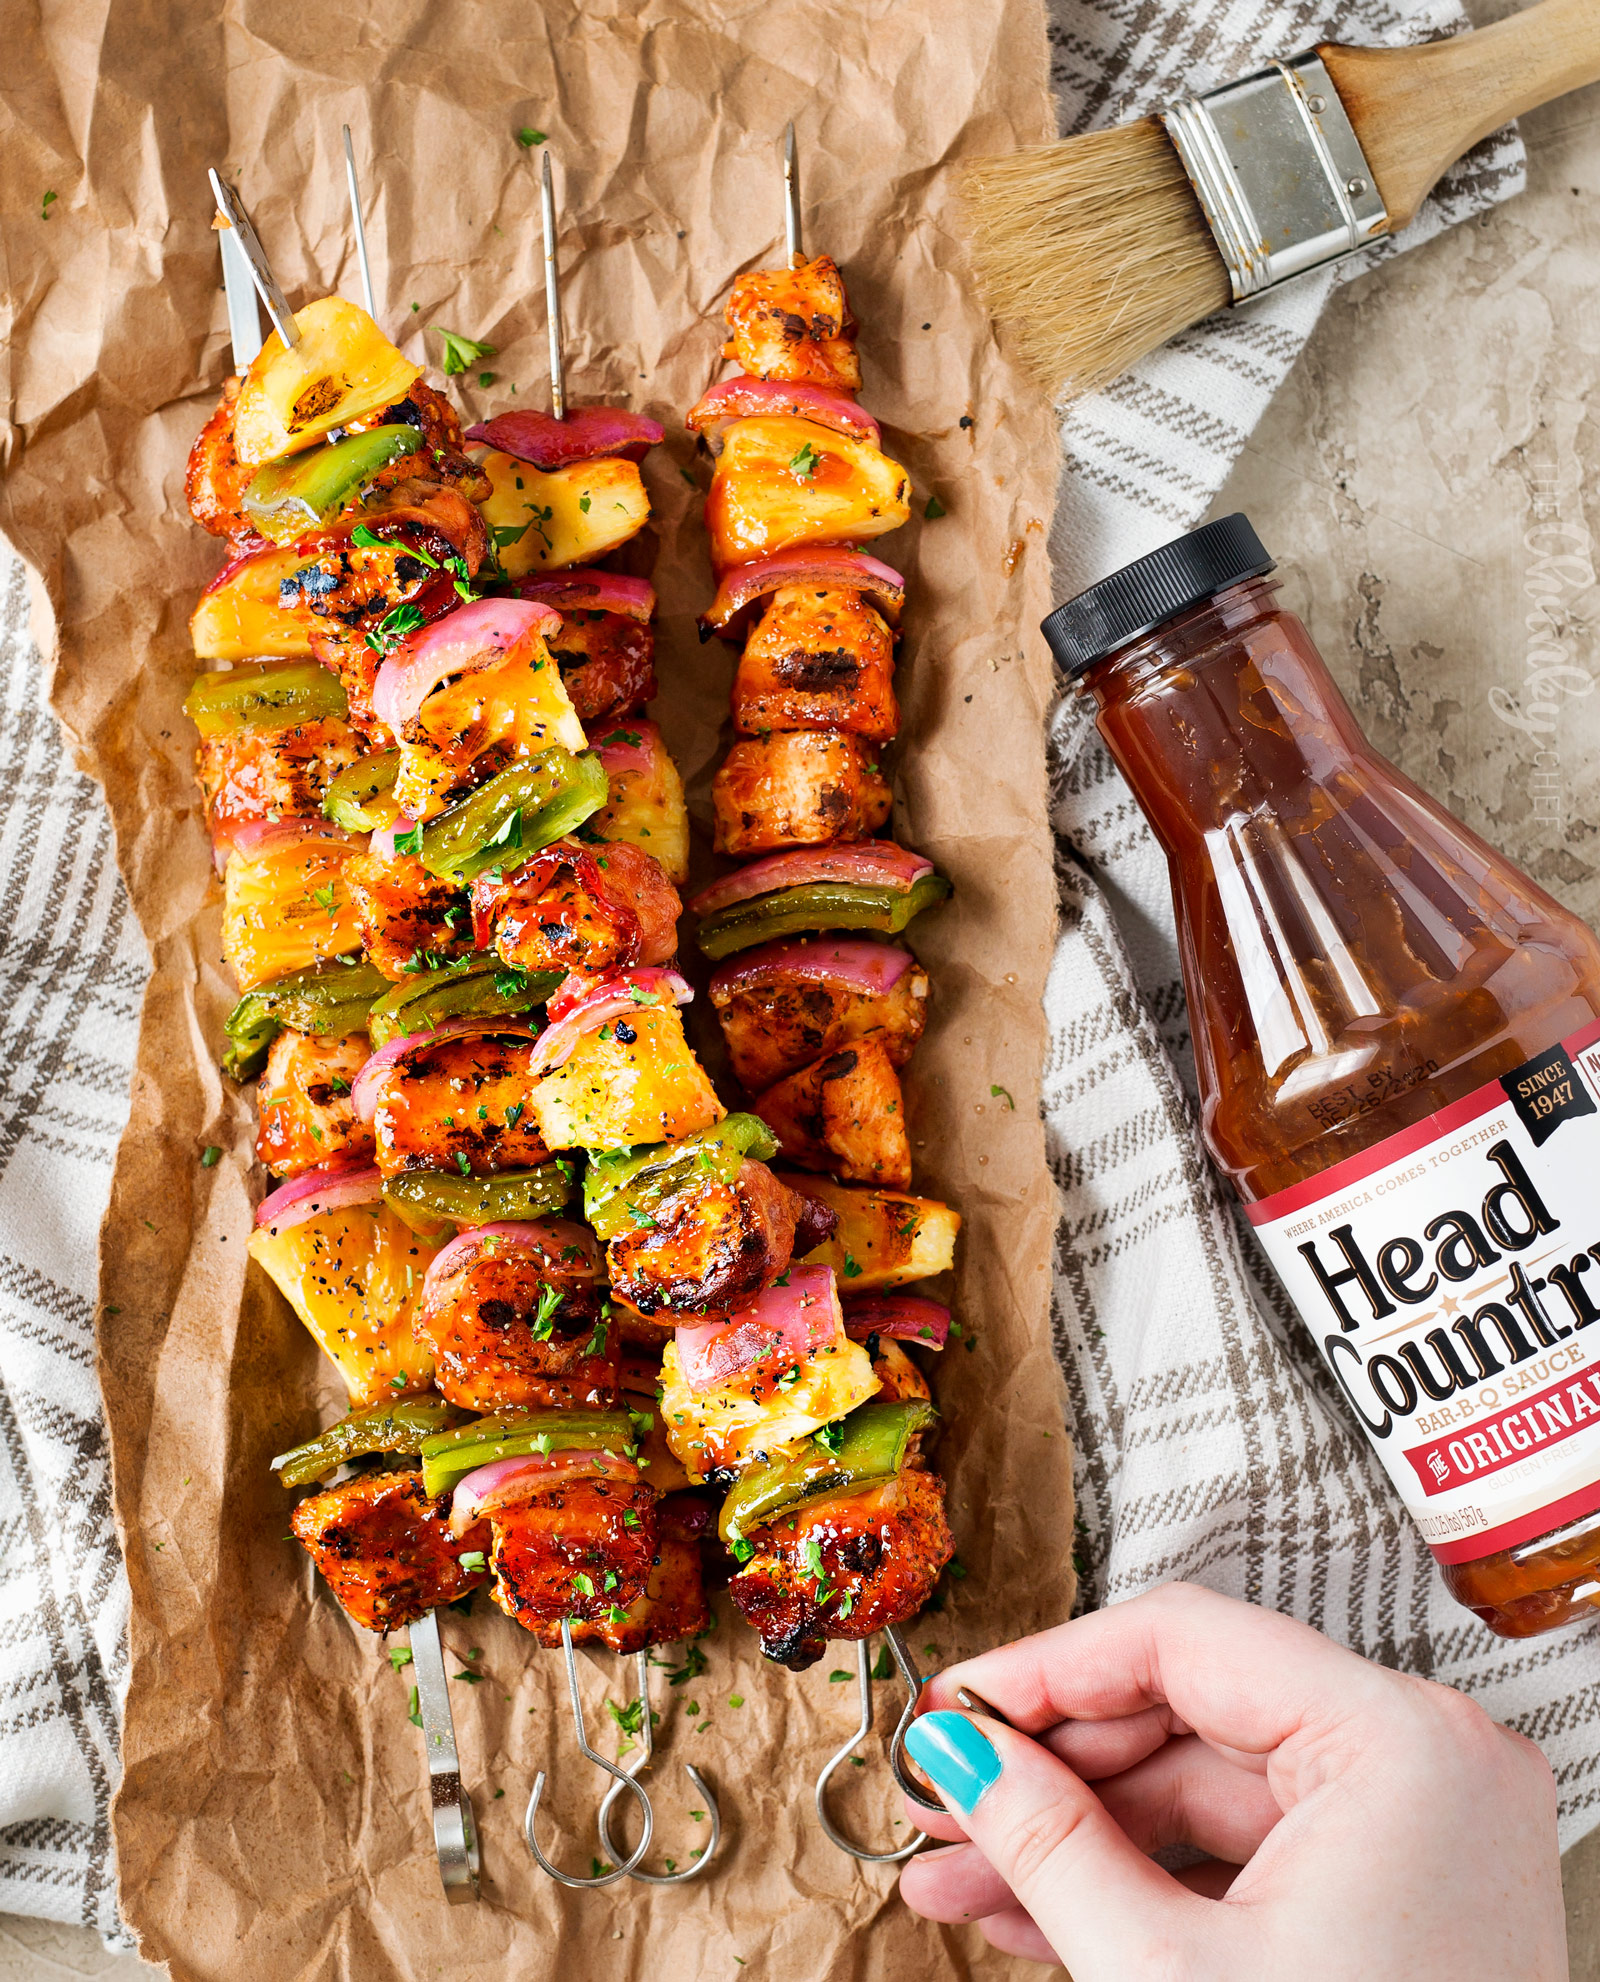 Grilled BBQ Chicken Kabobs | These chicken kabobs are loaded with flavor, from the homemade spice rub, to the perfect bbq sauce they're basted with.  Plus, tips for how to skewer bacon, and how to cook these kabobs when grilling isn't an option. | http://thechunkychef.com | chicken | kabob| kebab | skewer | bbq | easy | grilled | summer